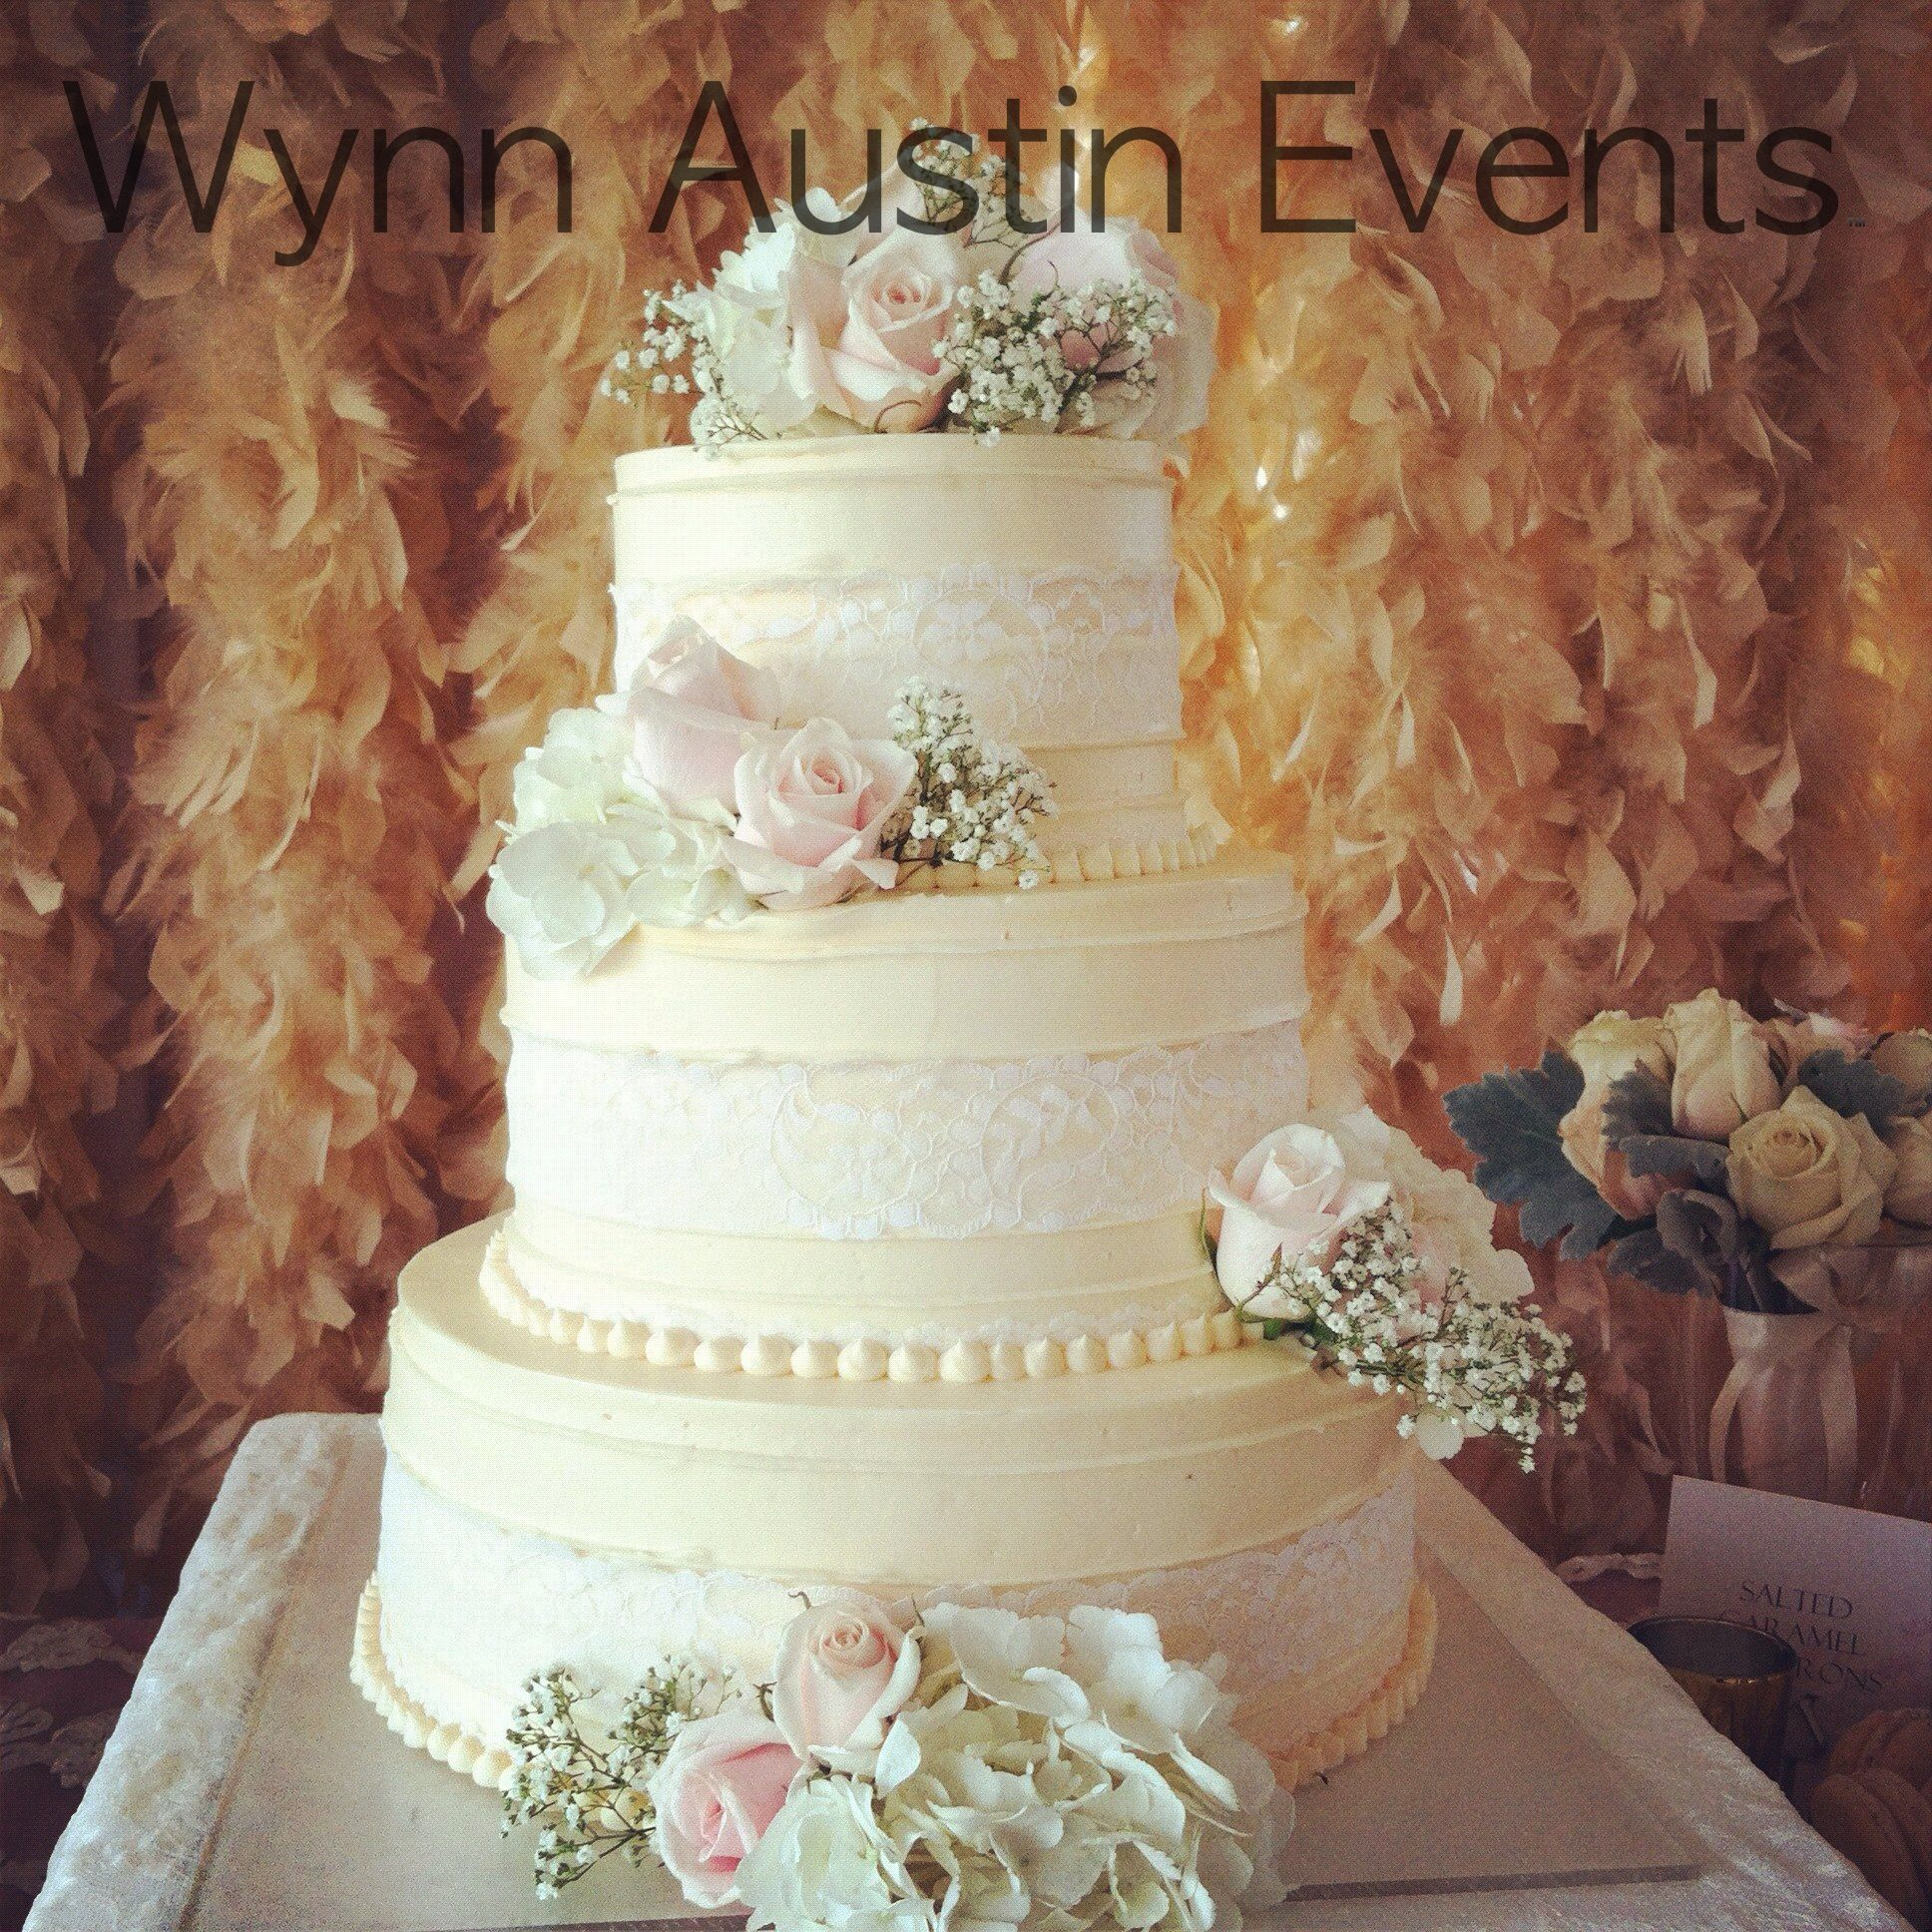 Cake with blush and peach feather backdrop wynn austin events